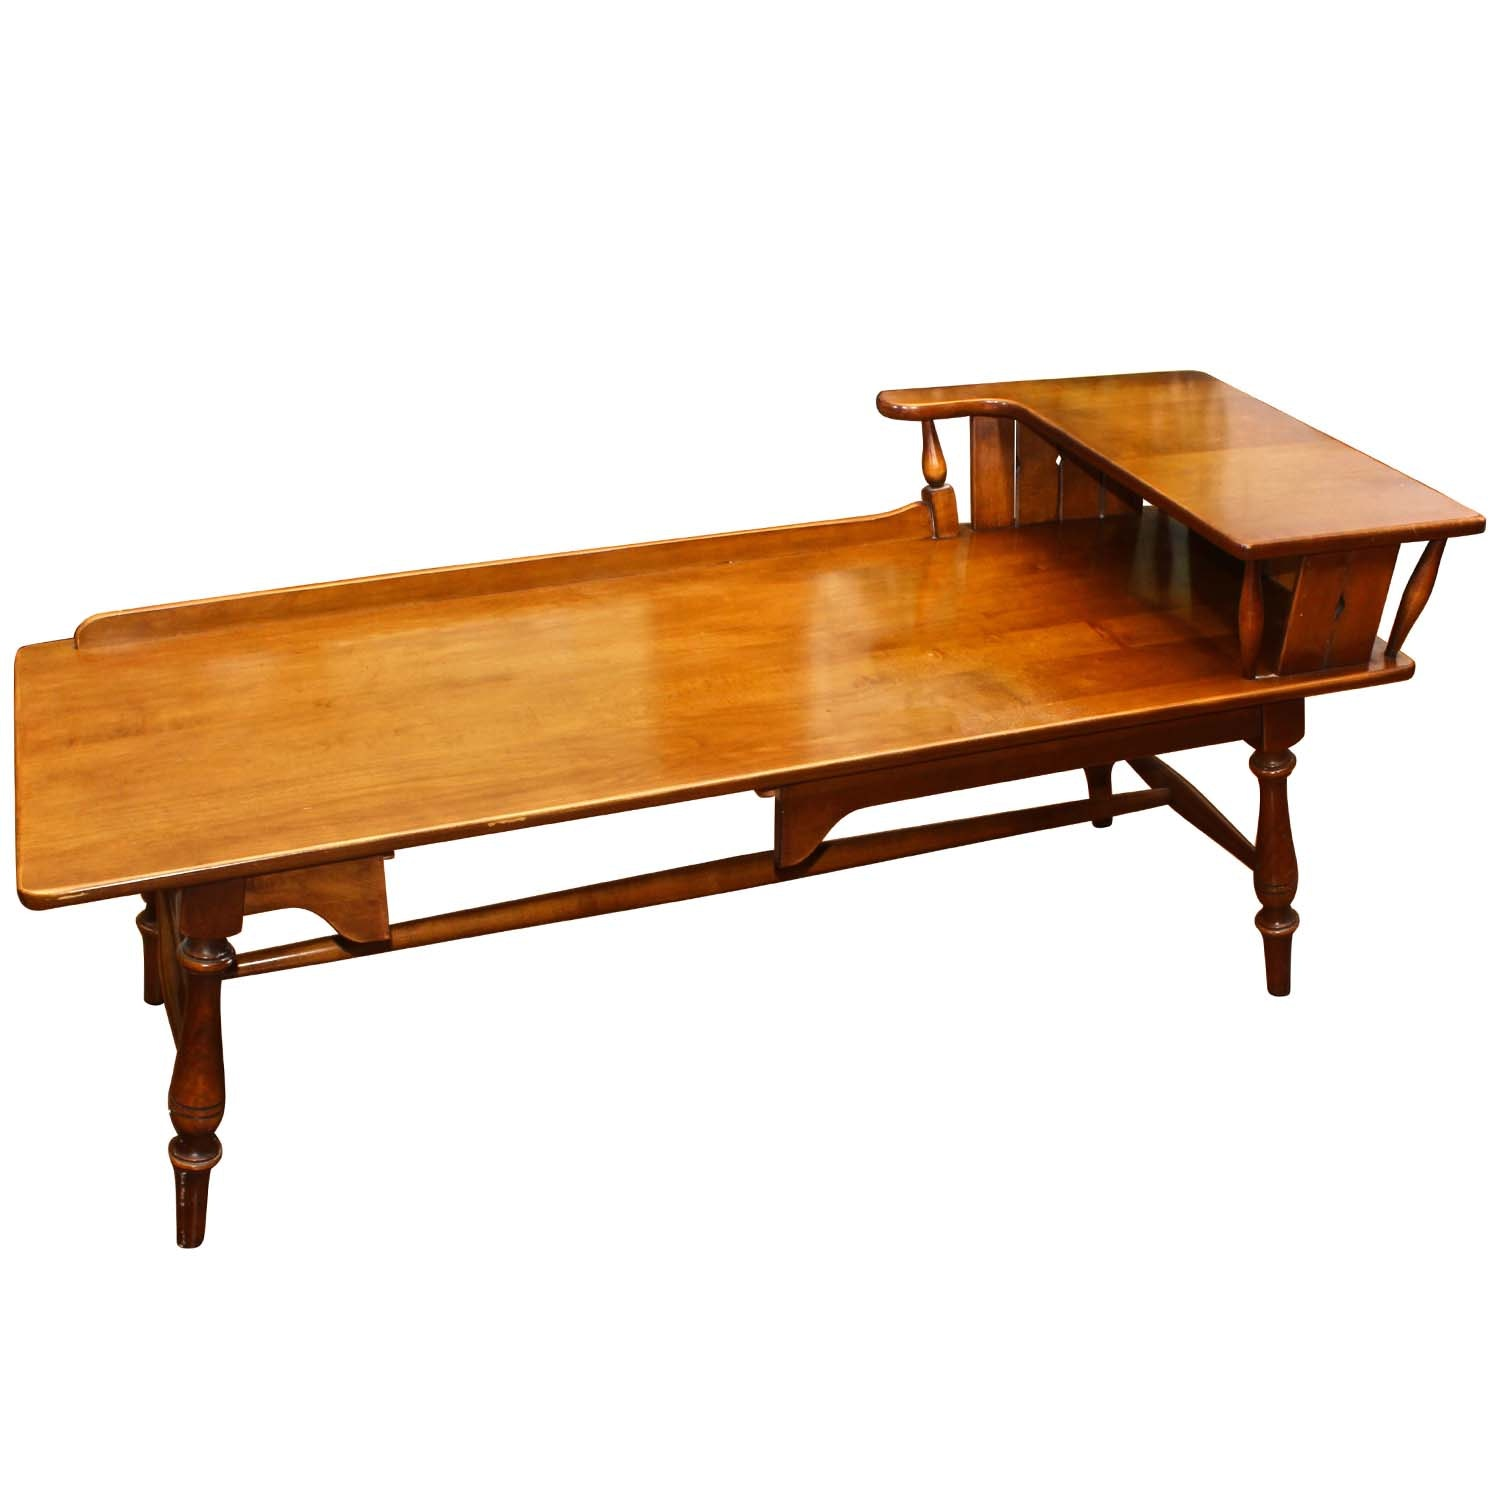 Early American Style Maple Coffee Table